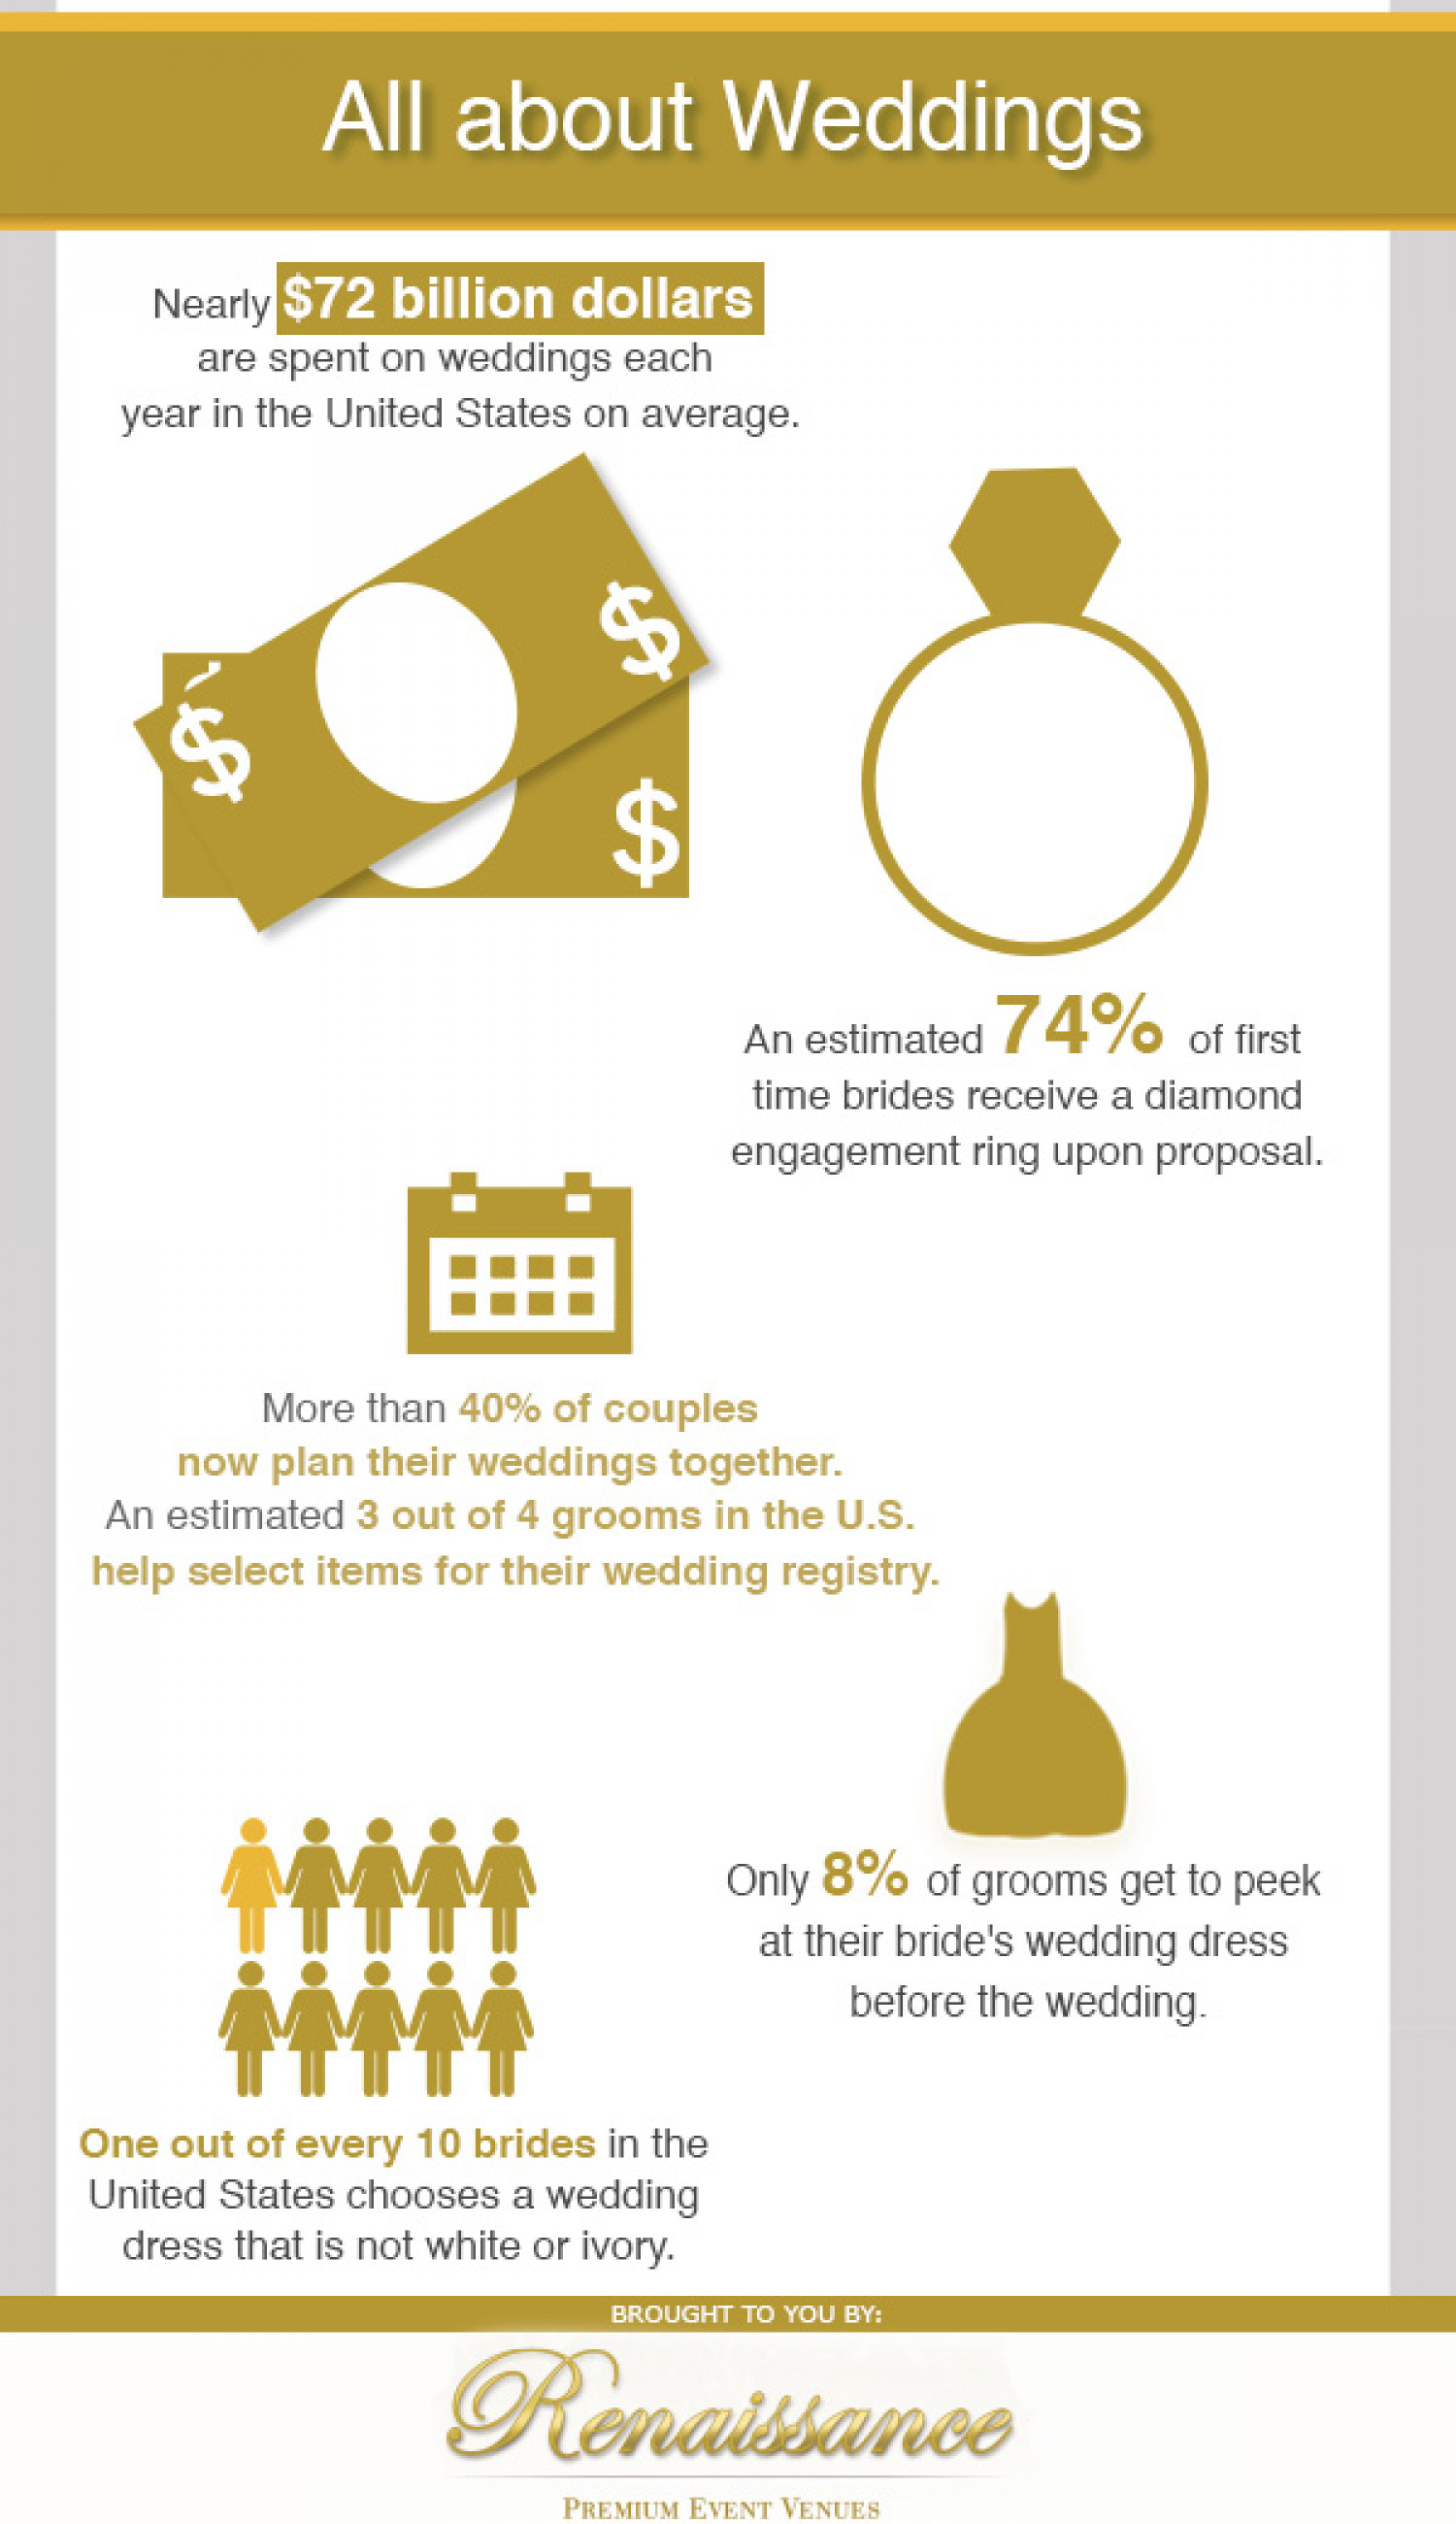 All about Weddings Infographic